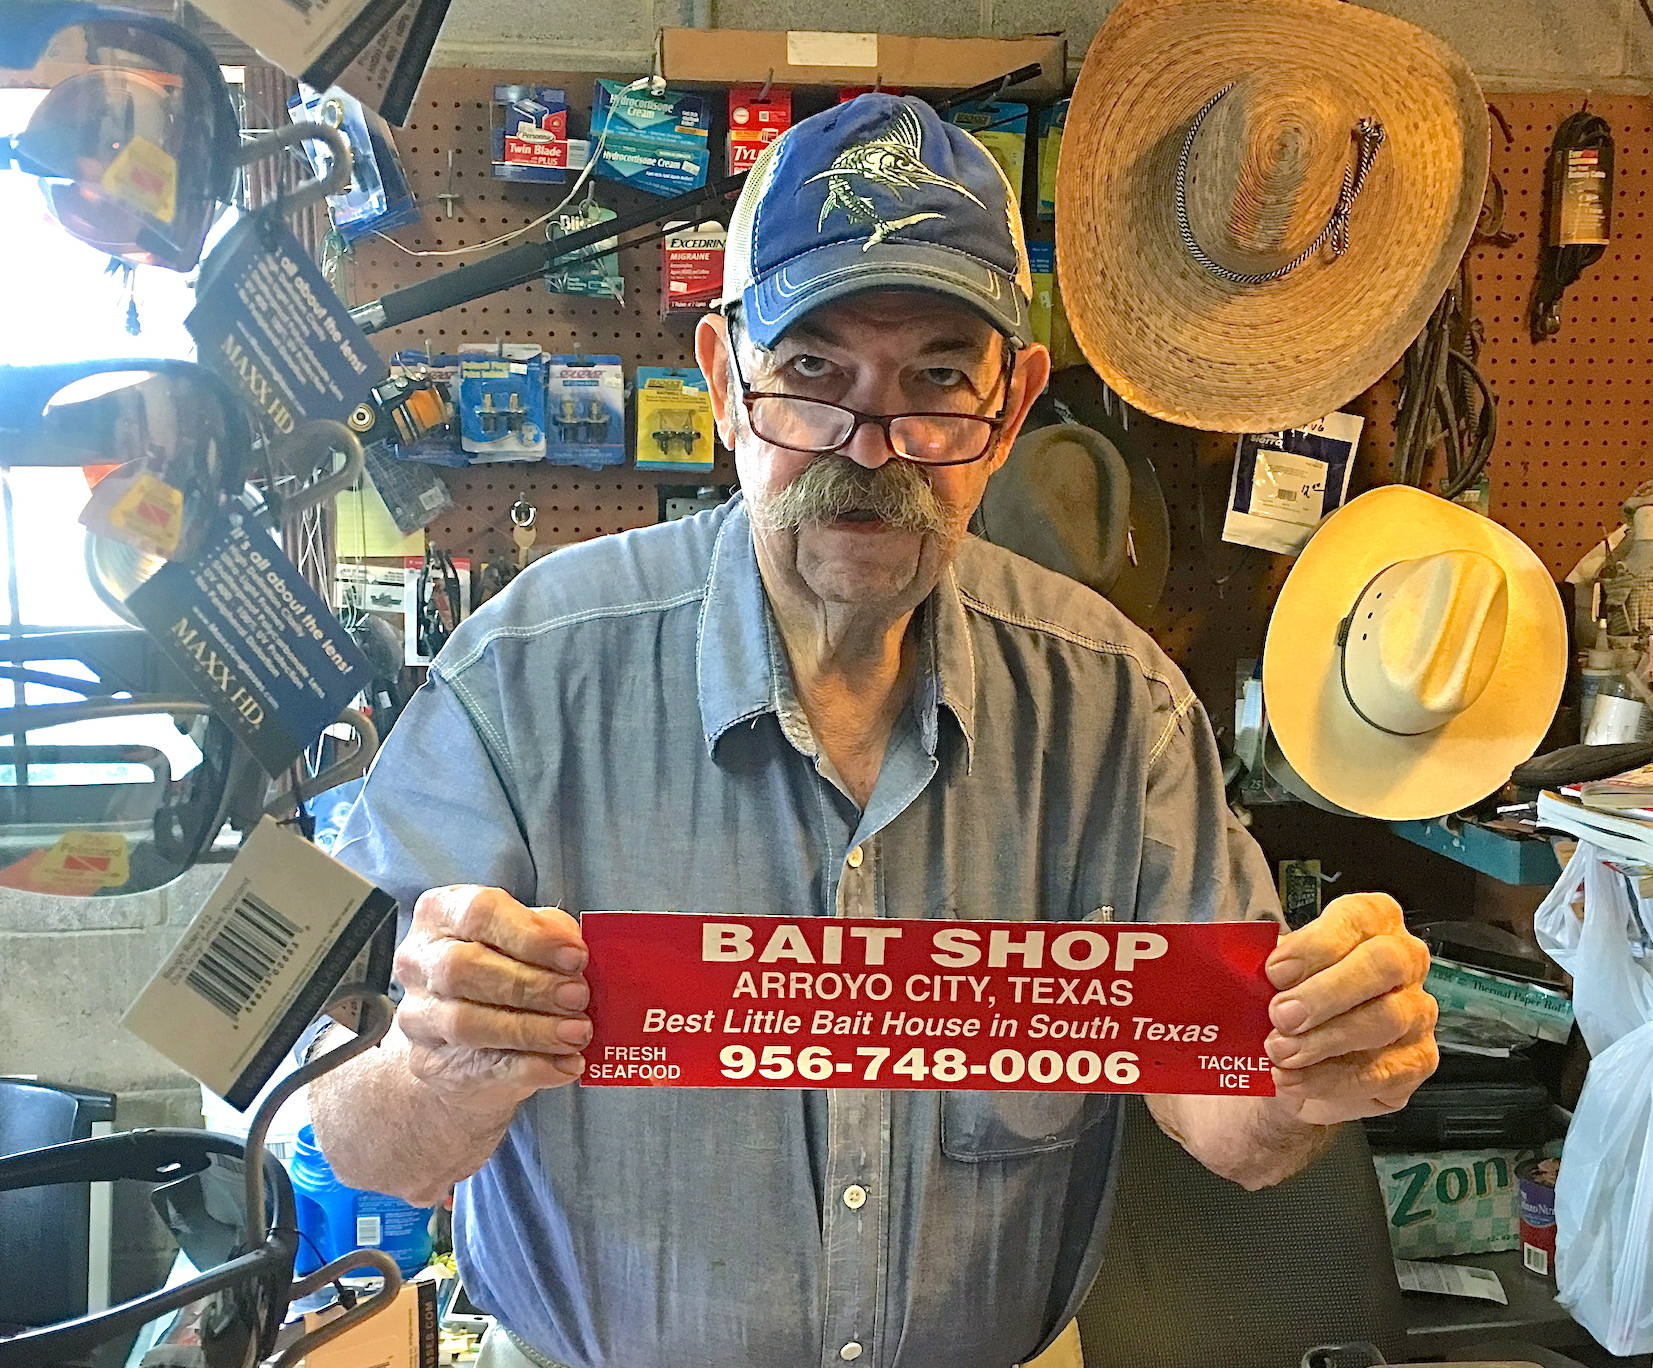 Jerry Cochran, Owner Of The Bait Shop In Arroyo City, Says That A Customer